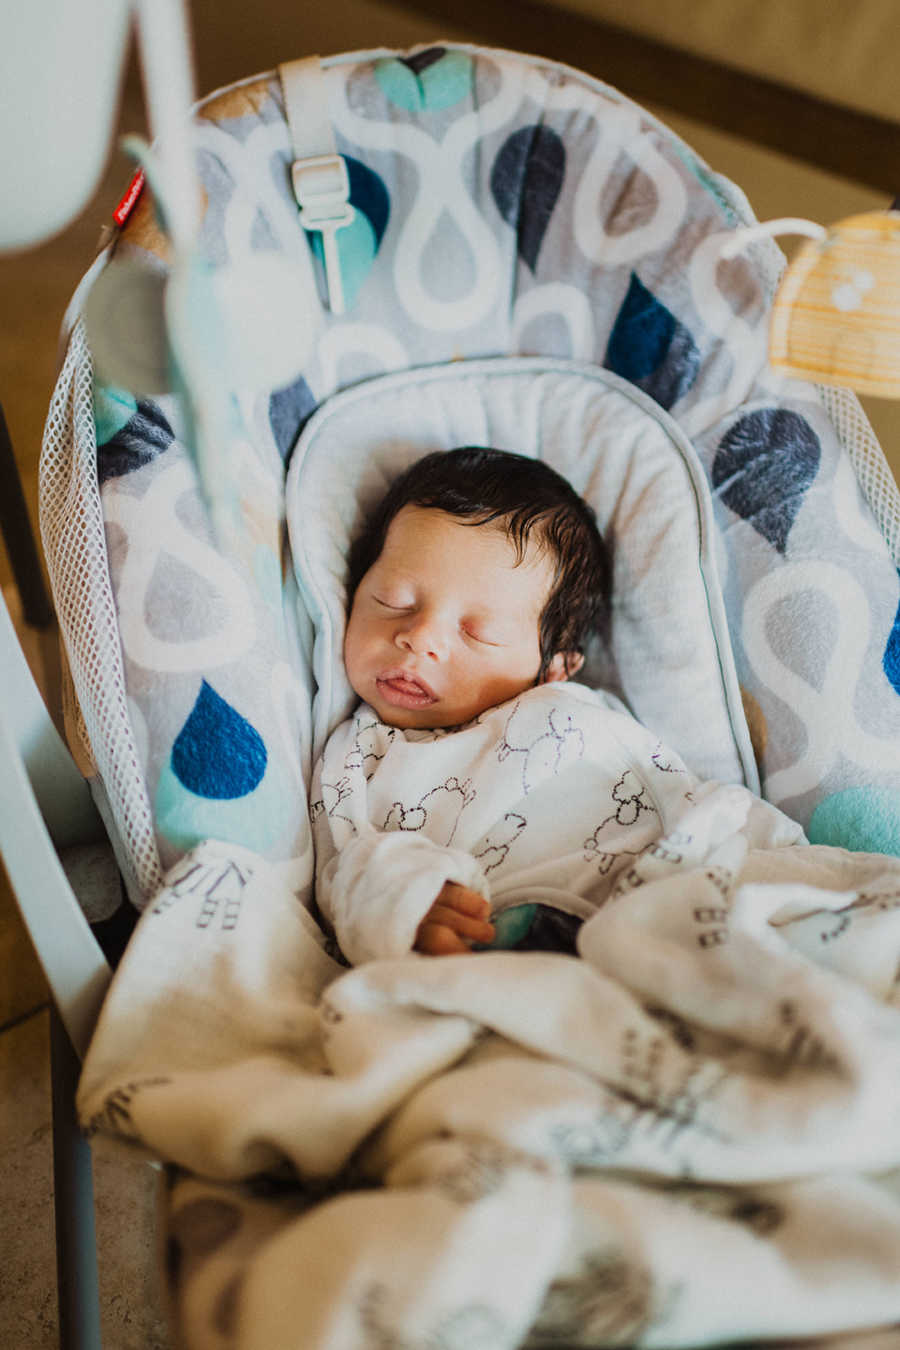 Mom snaps a photo of her son born with a limb difference sleeping in a baby carrier